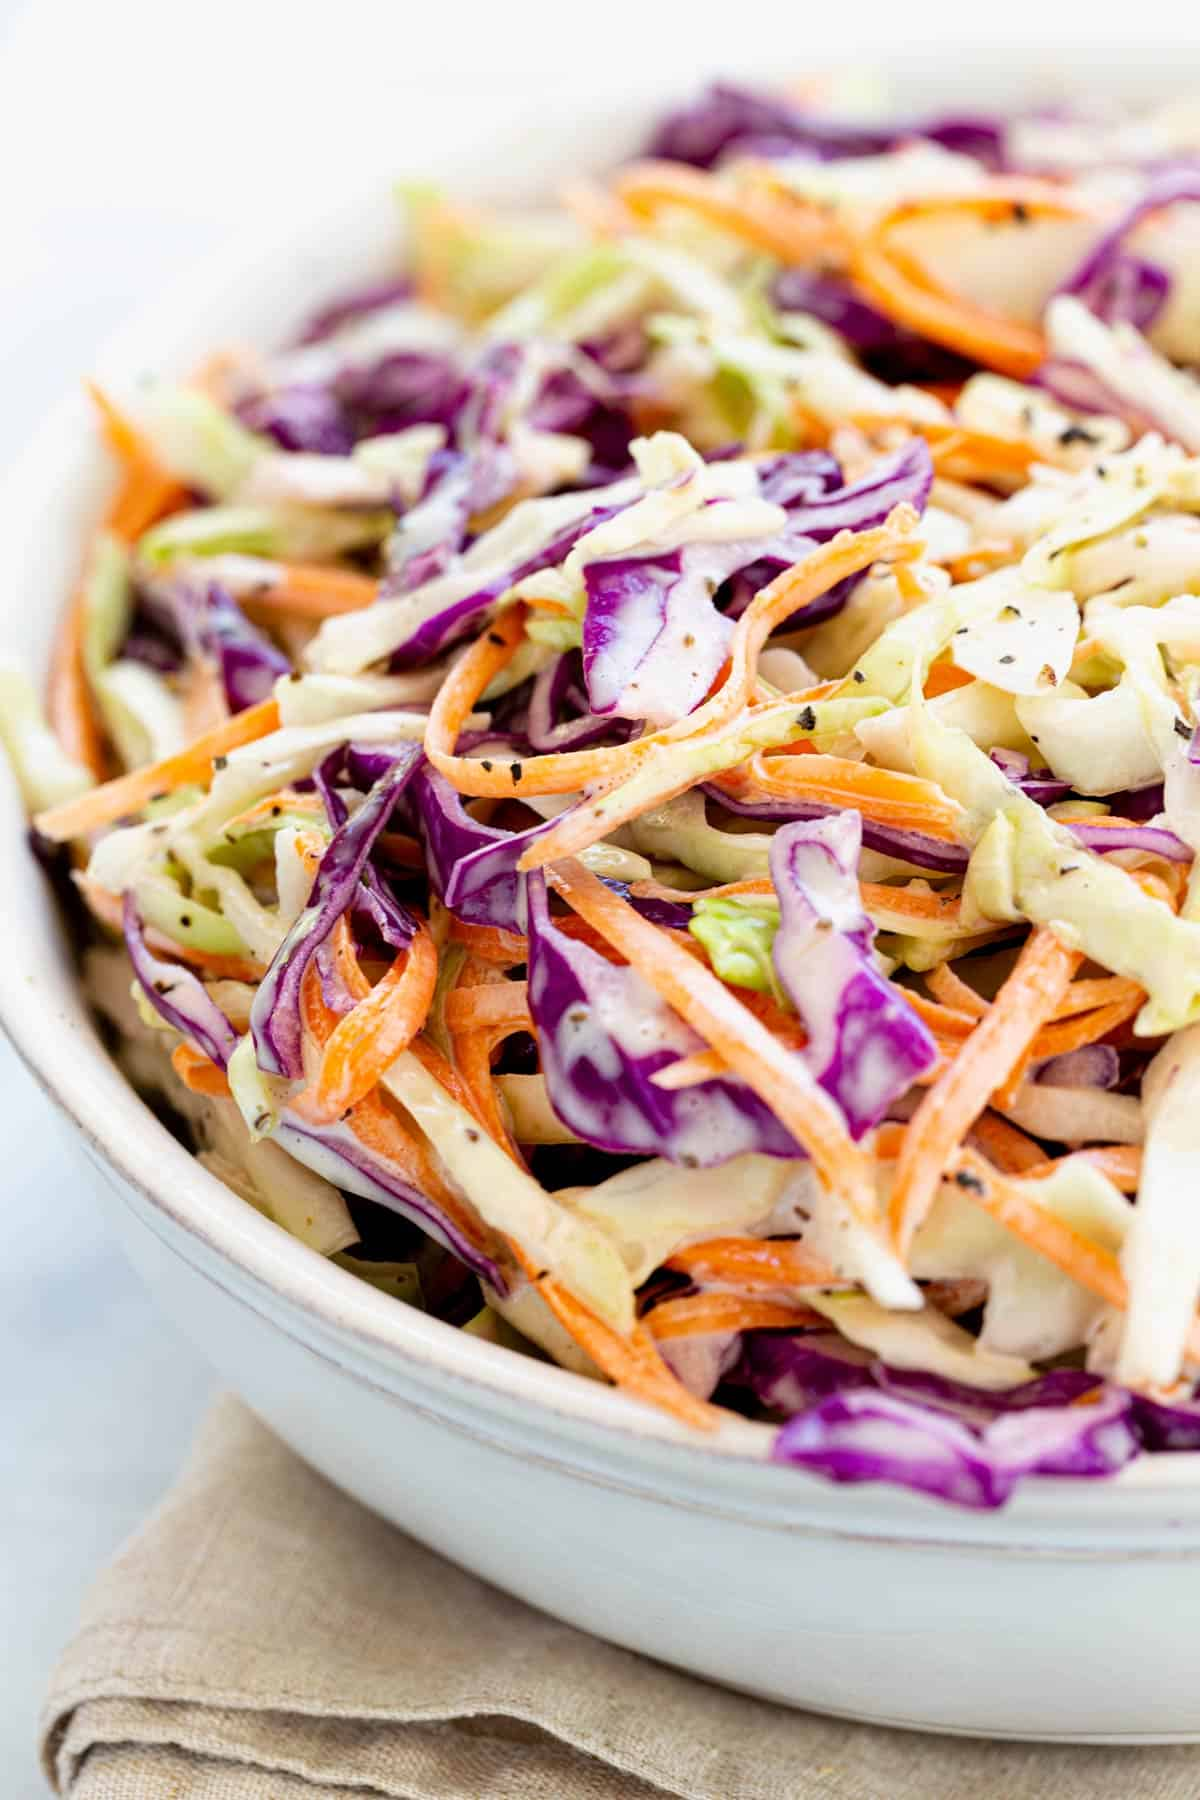 Easy homemade coleslaw recipe mixes crunchy shredded cabbage and carrots with a creamy dressing perfect for a side dish or sandwich topping. #coleslaw #cabbage #barbecue #potluck